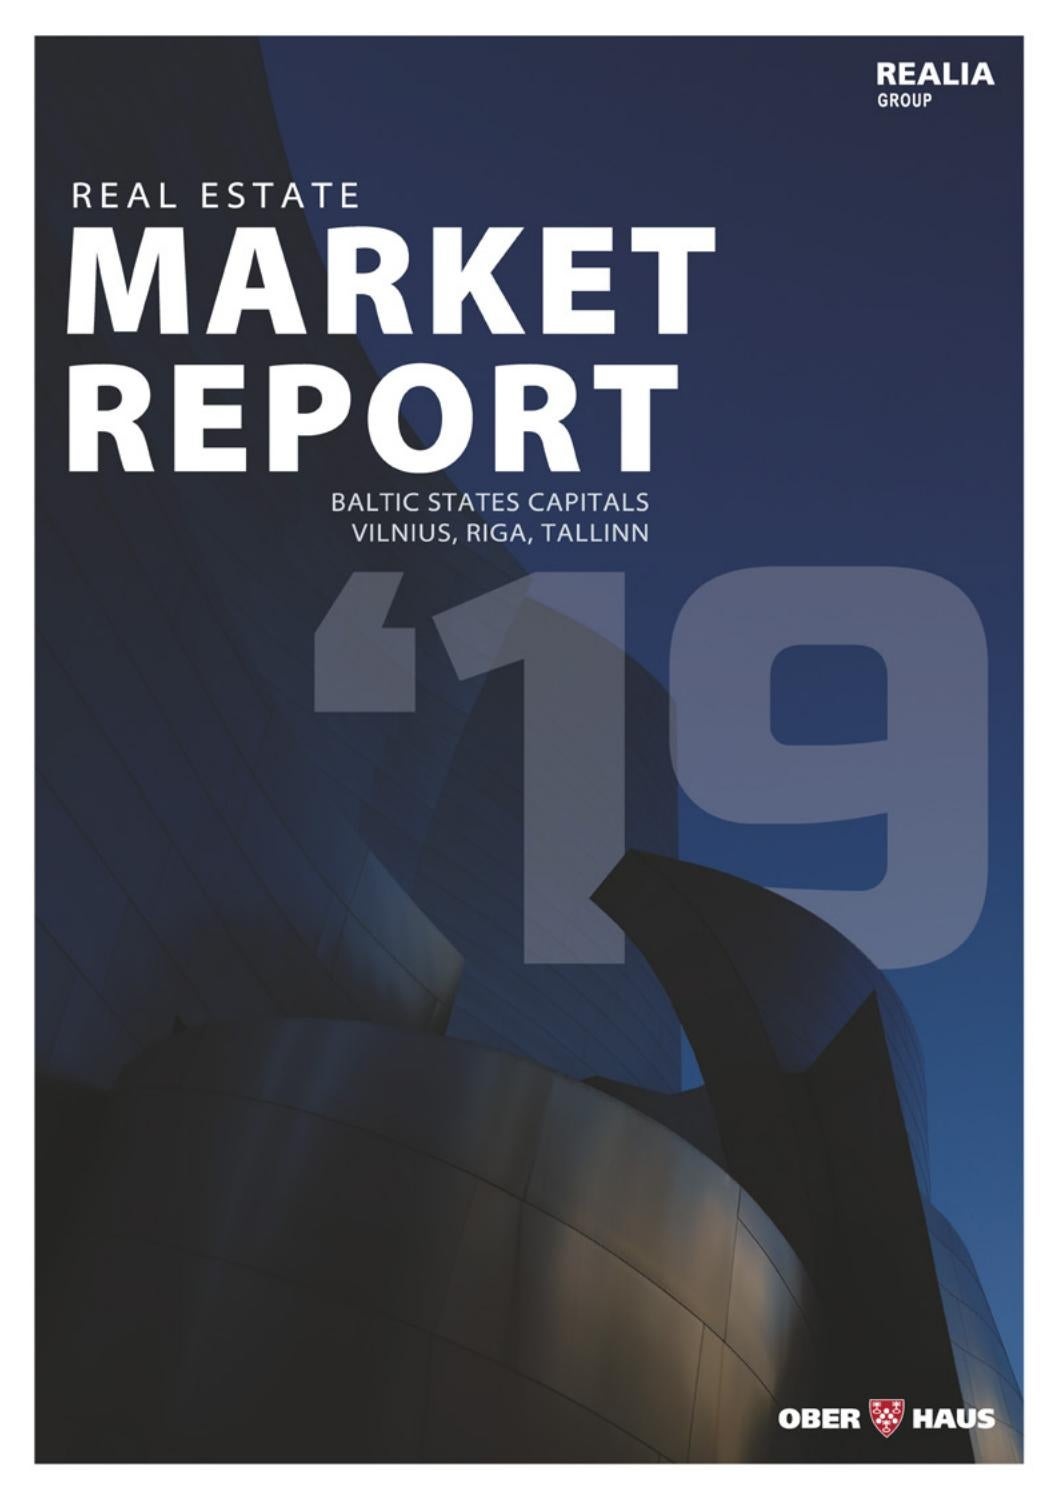 Ober-Haus Real Estate Market Report 2019 by Ober-Haus - issuu